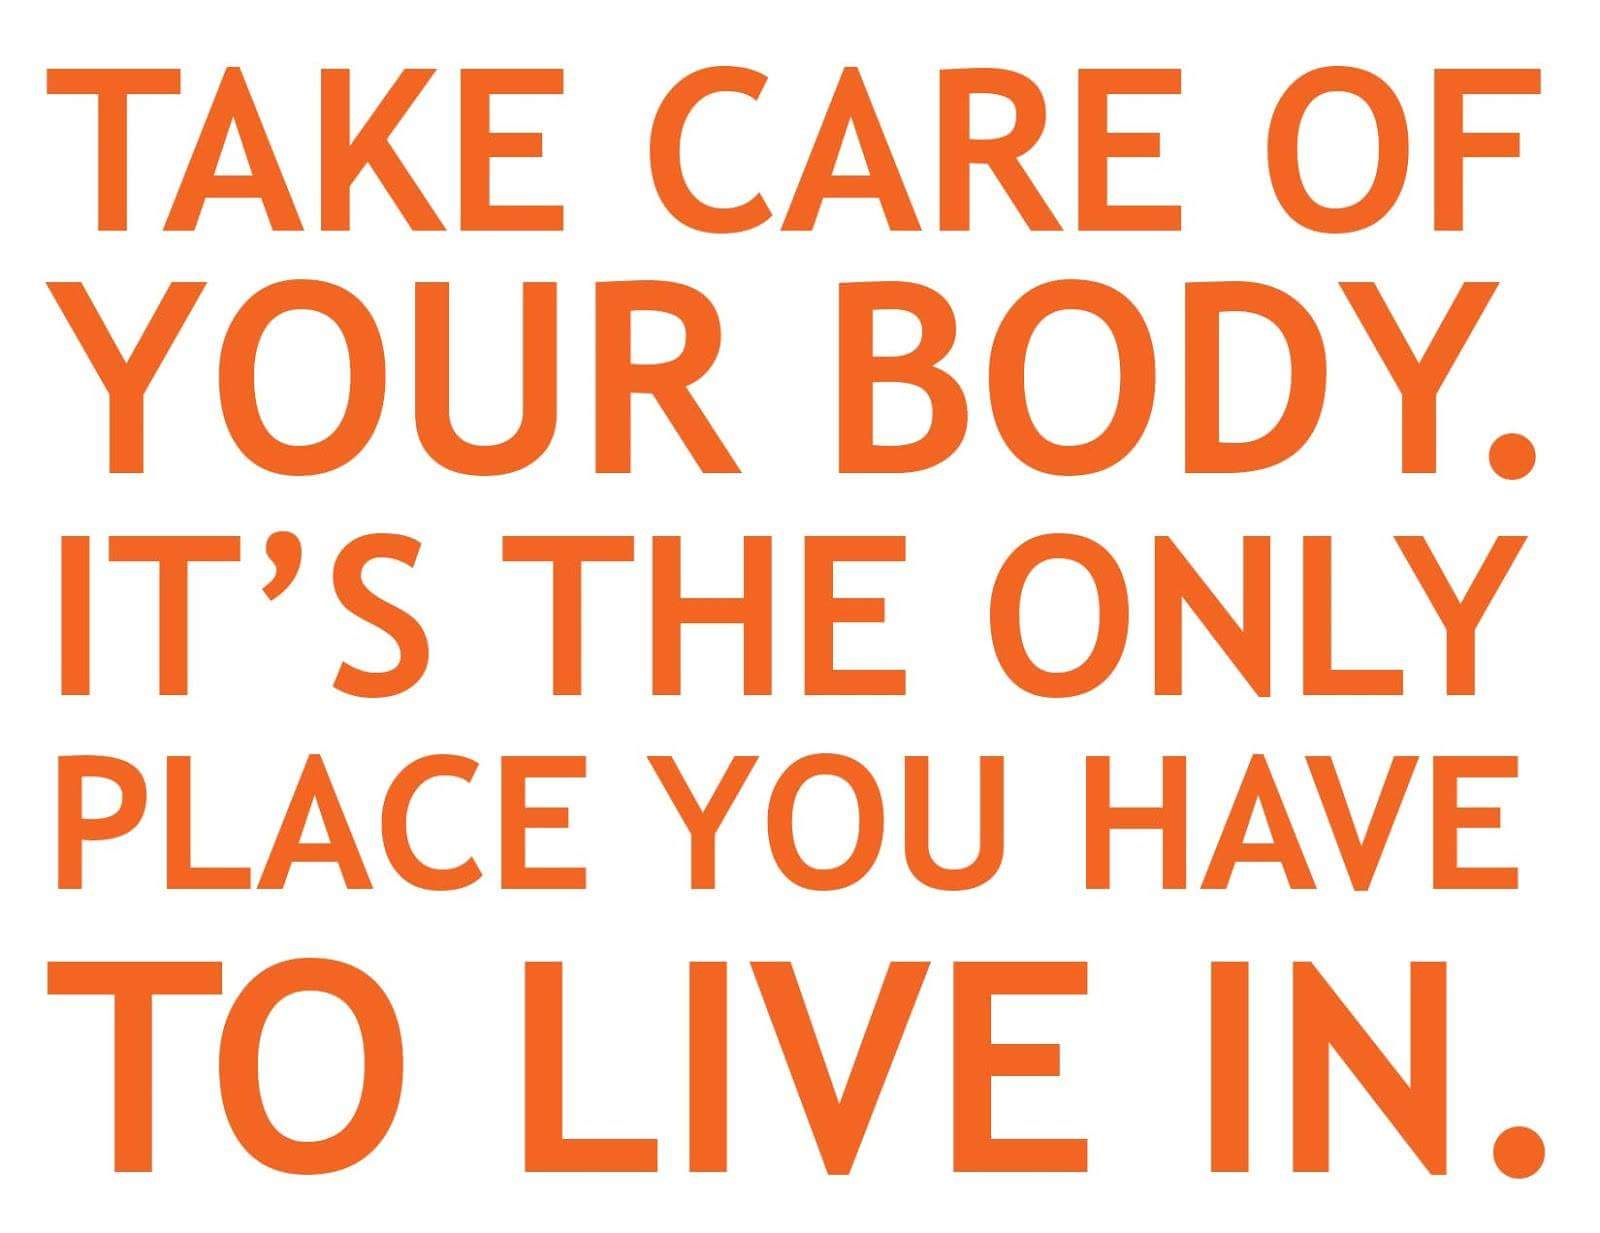 Live in your body